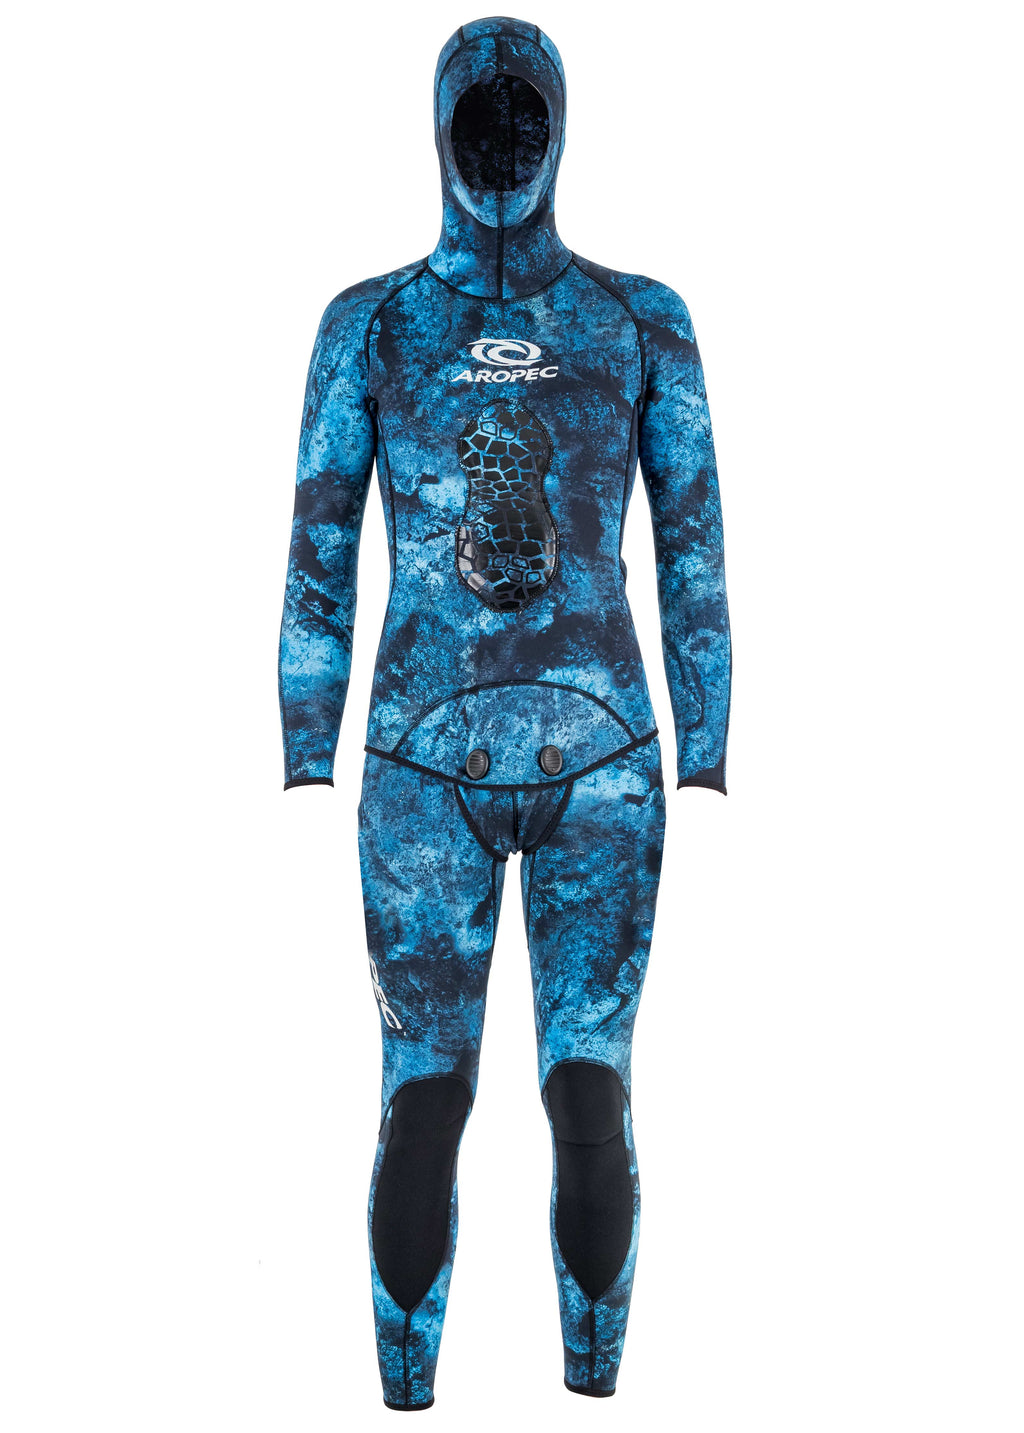 Aropec Camo 2mm 2 Piece Spearfishing Suit